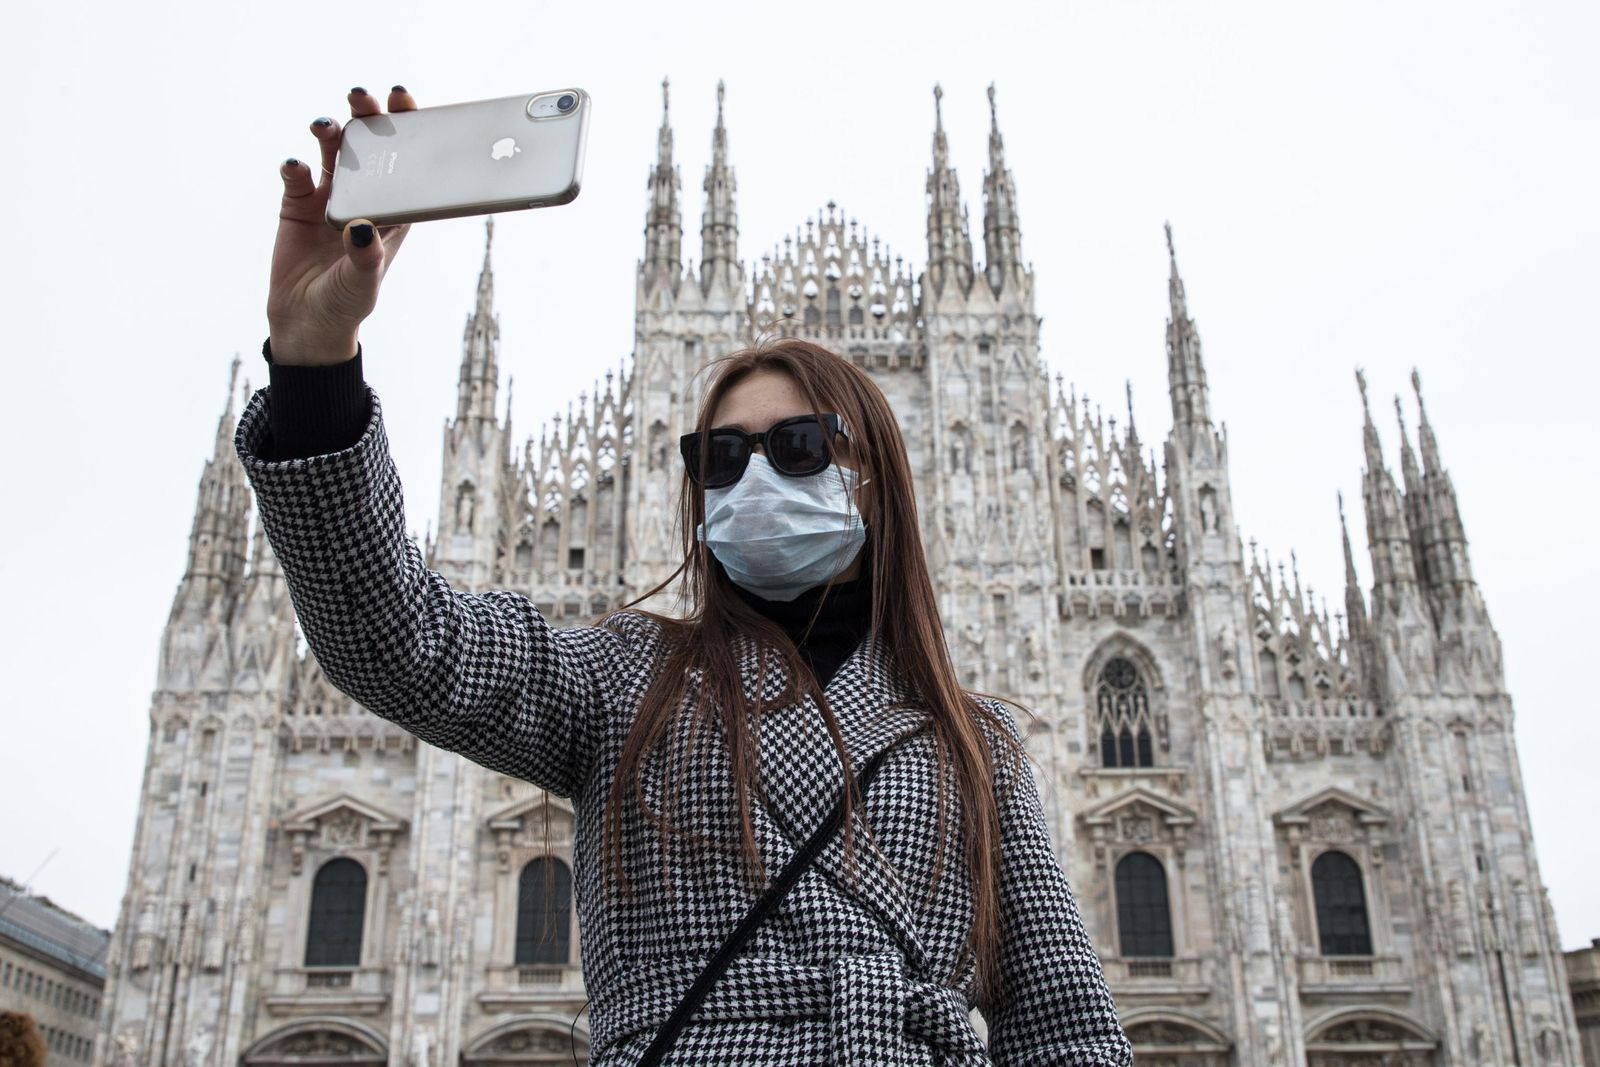 Milan's streets deserted as whole of Italy now in coronavirus lockdown - 10 Mar 2020